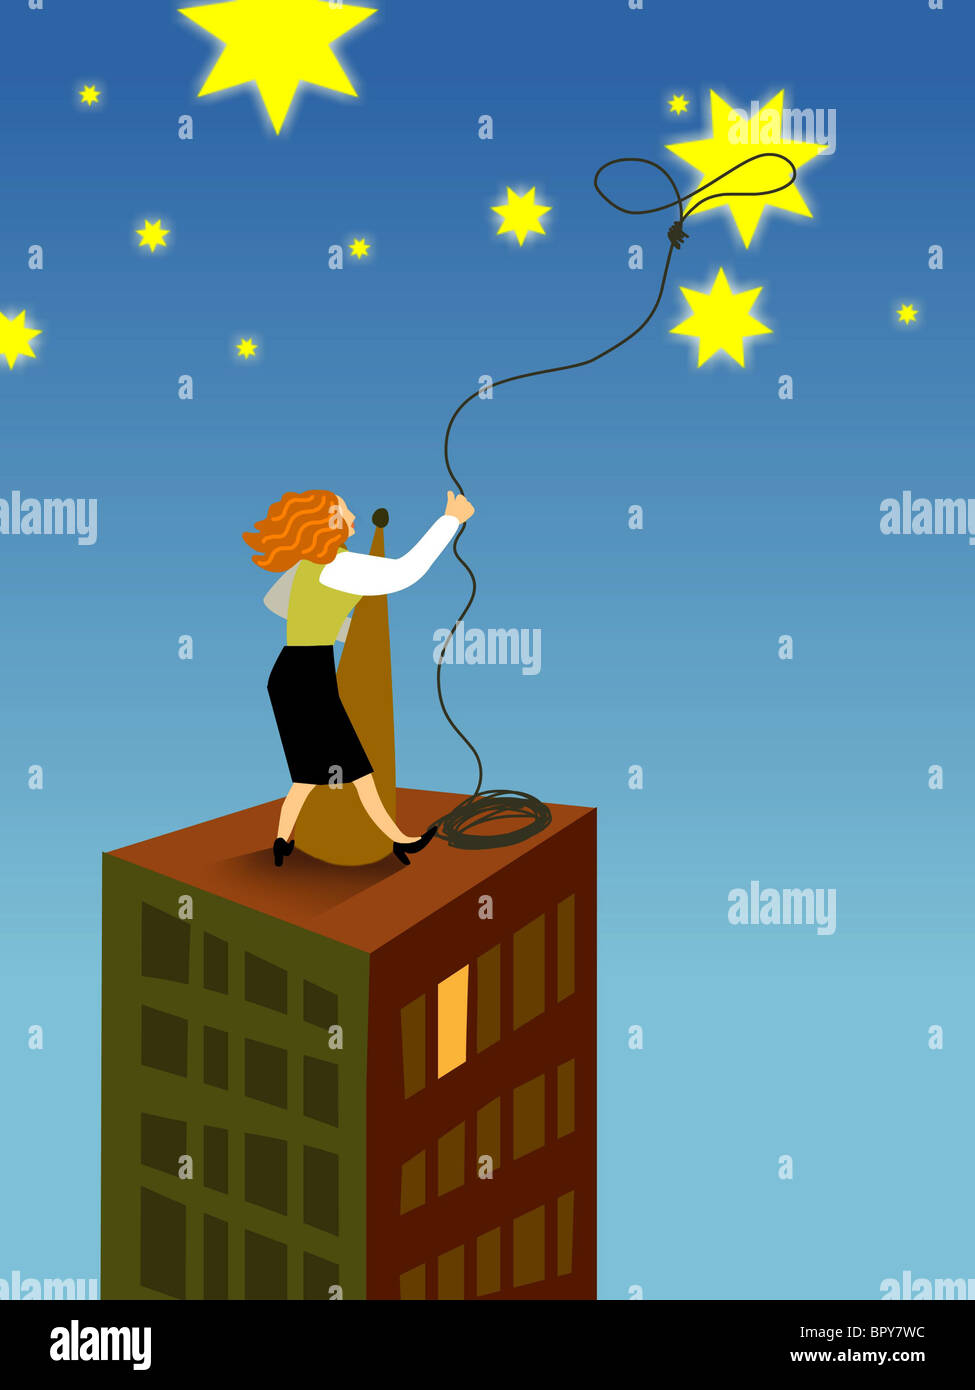 A businesswoman lassoing a star from the sky - Stock Image